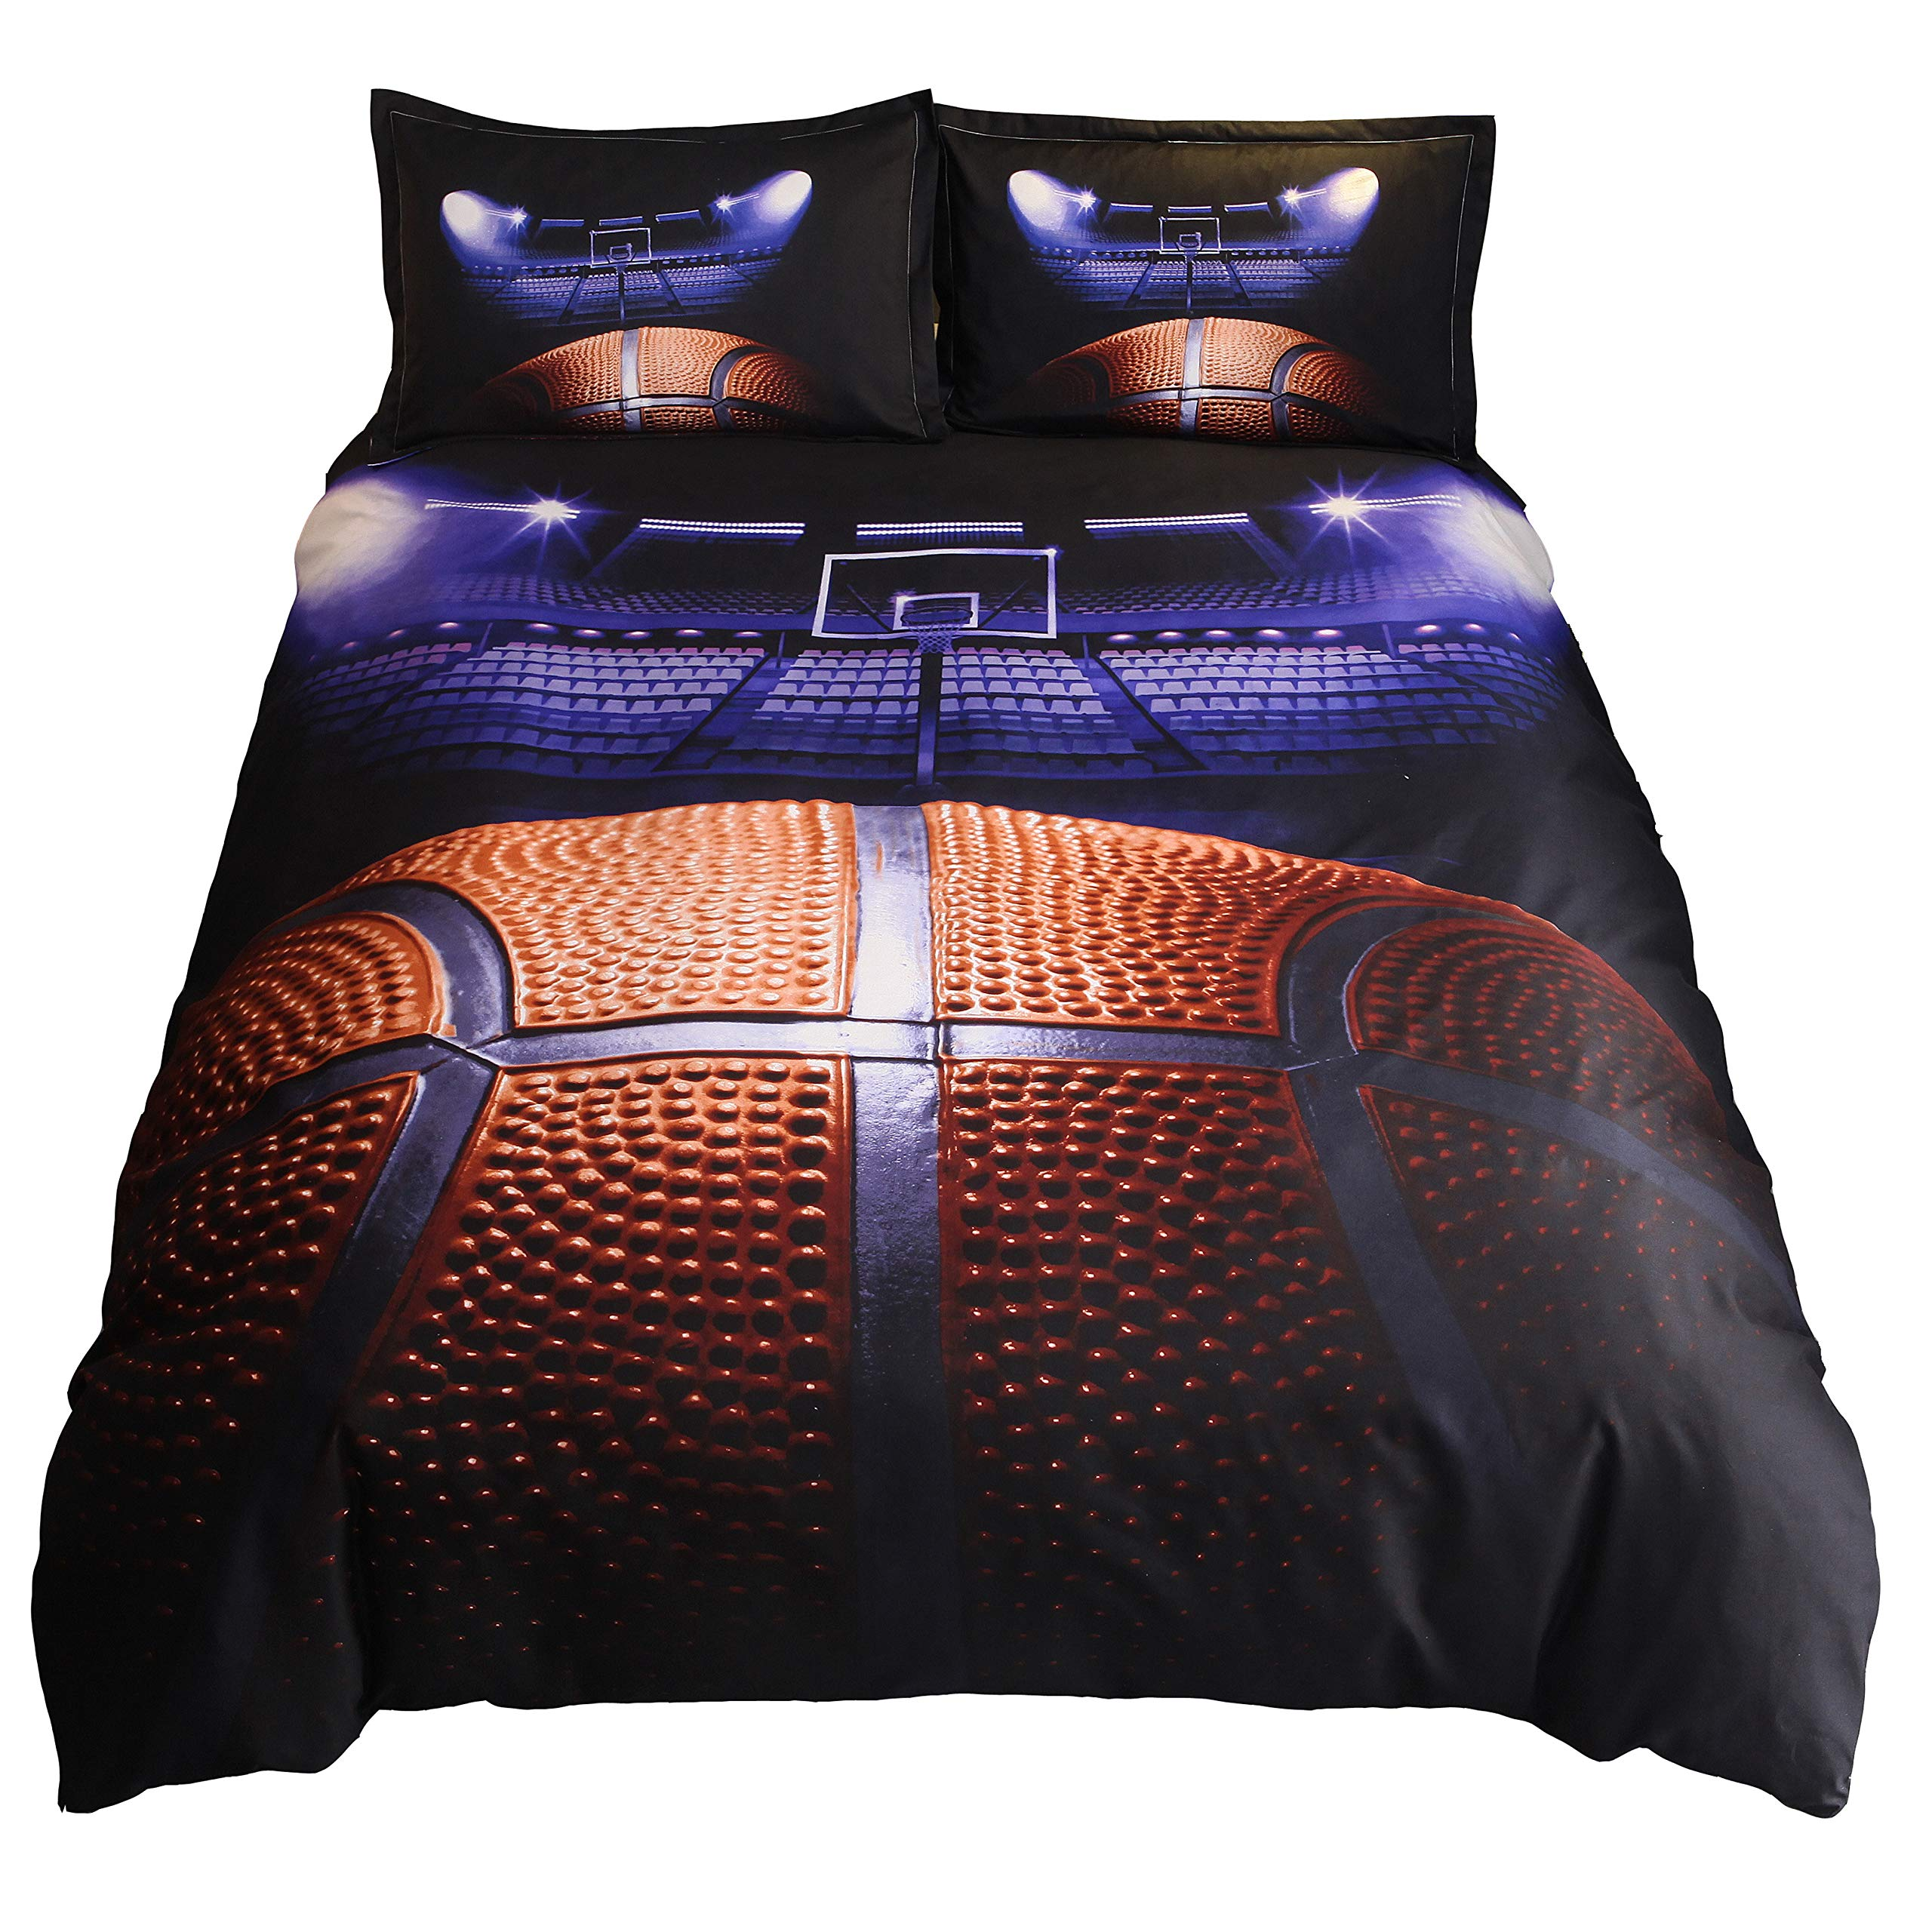 HTgroce 3D Sports Basketball curt Bedding Set for Teen Boys,Duvet Cover Sets with Pillowcases,Queen Size,3PCS,1 Duvet Cover+2 Pillow Shams,(Comforter not Included)